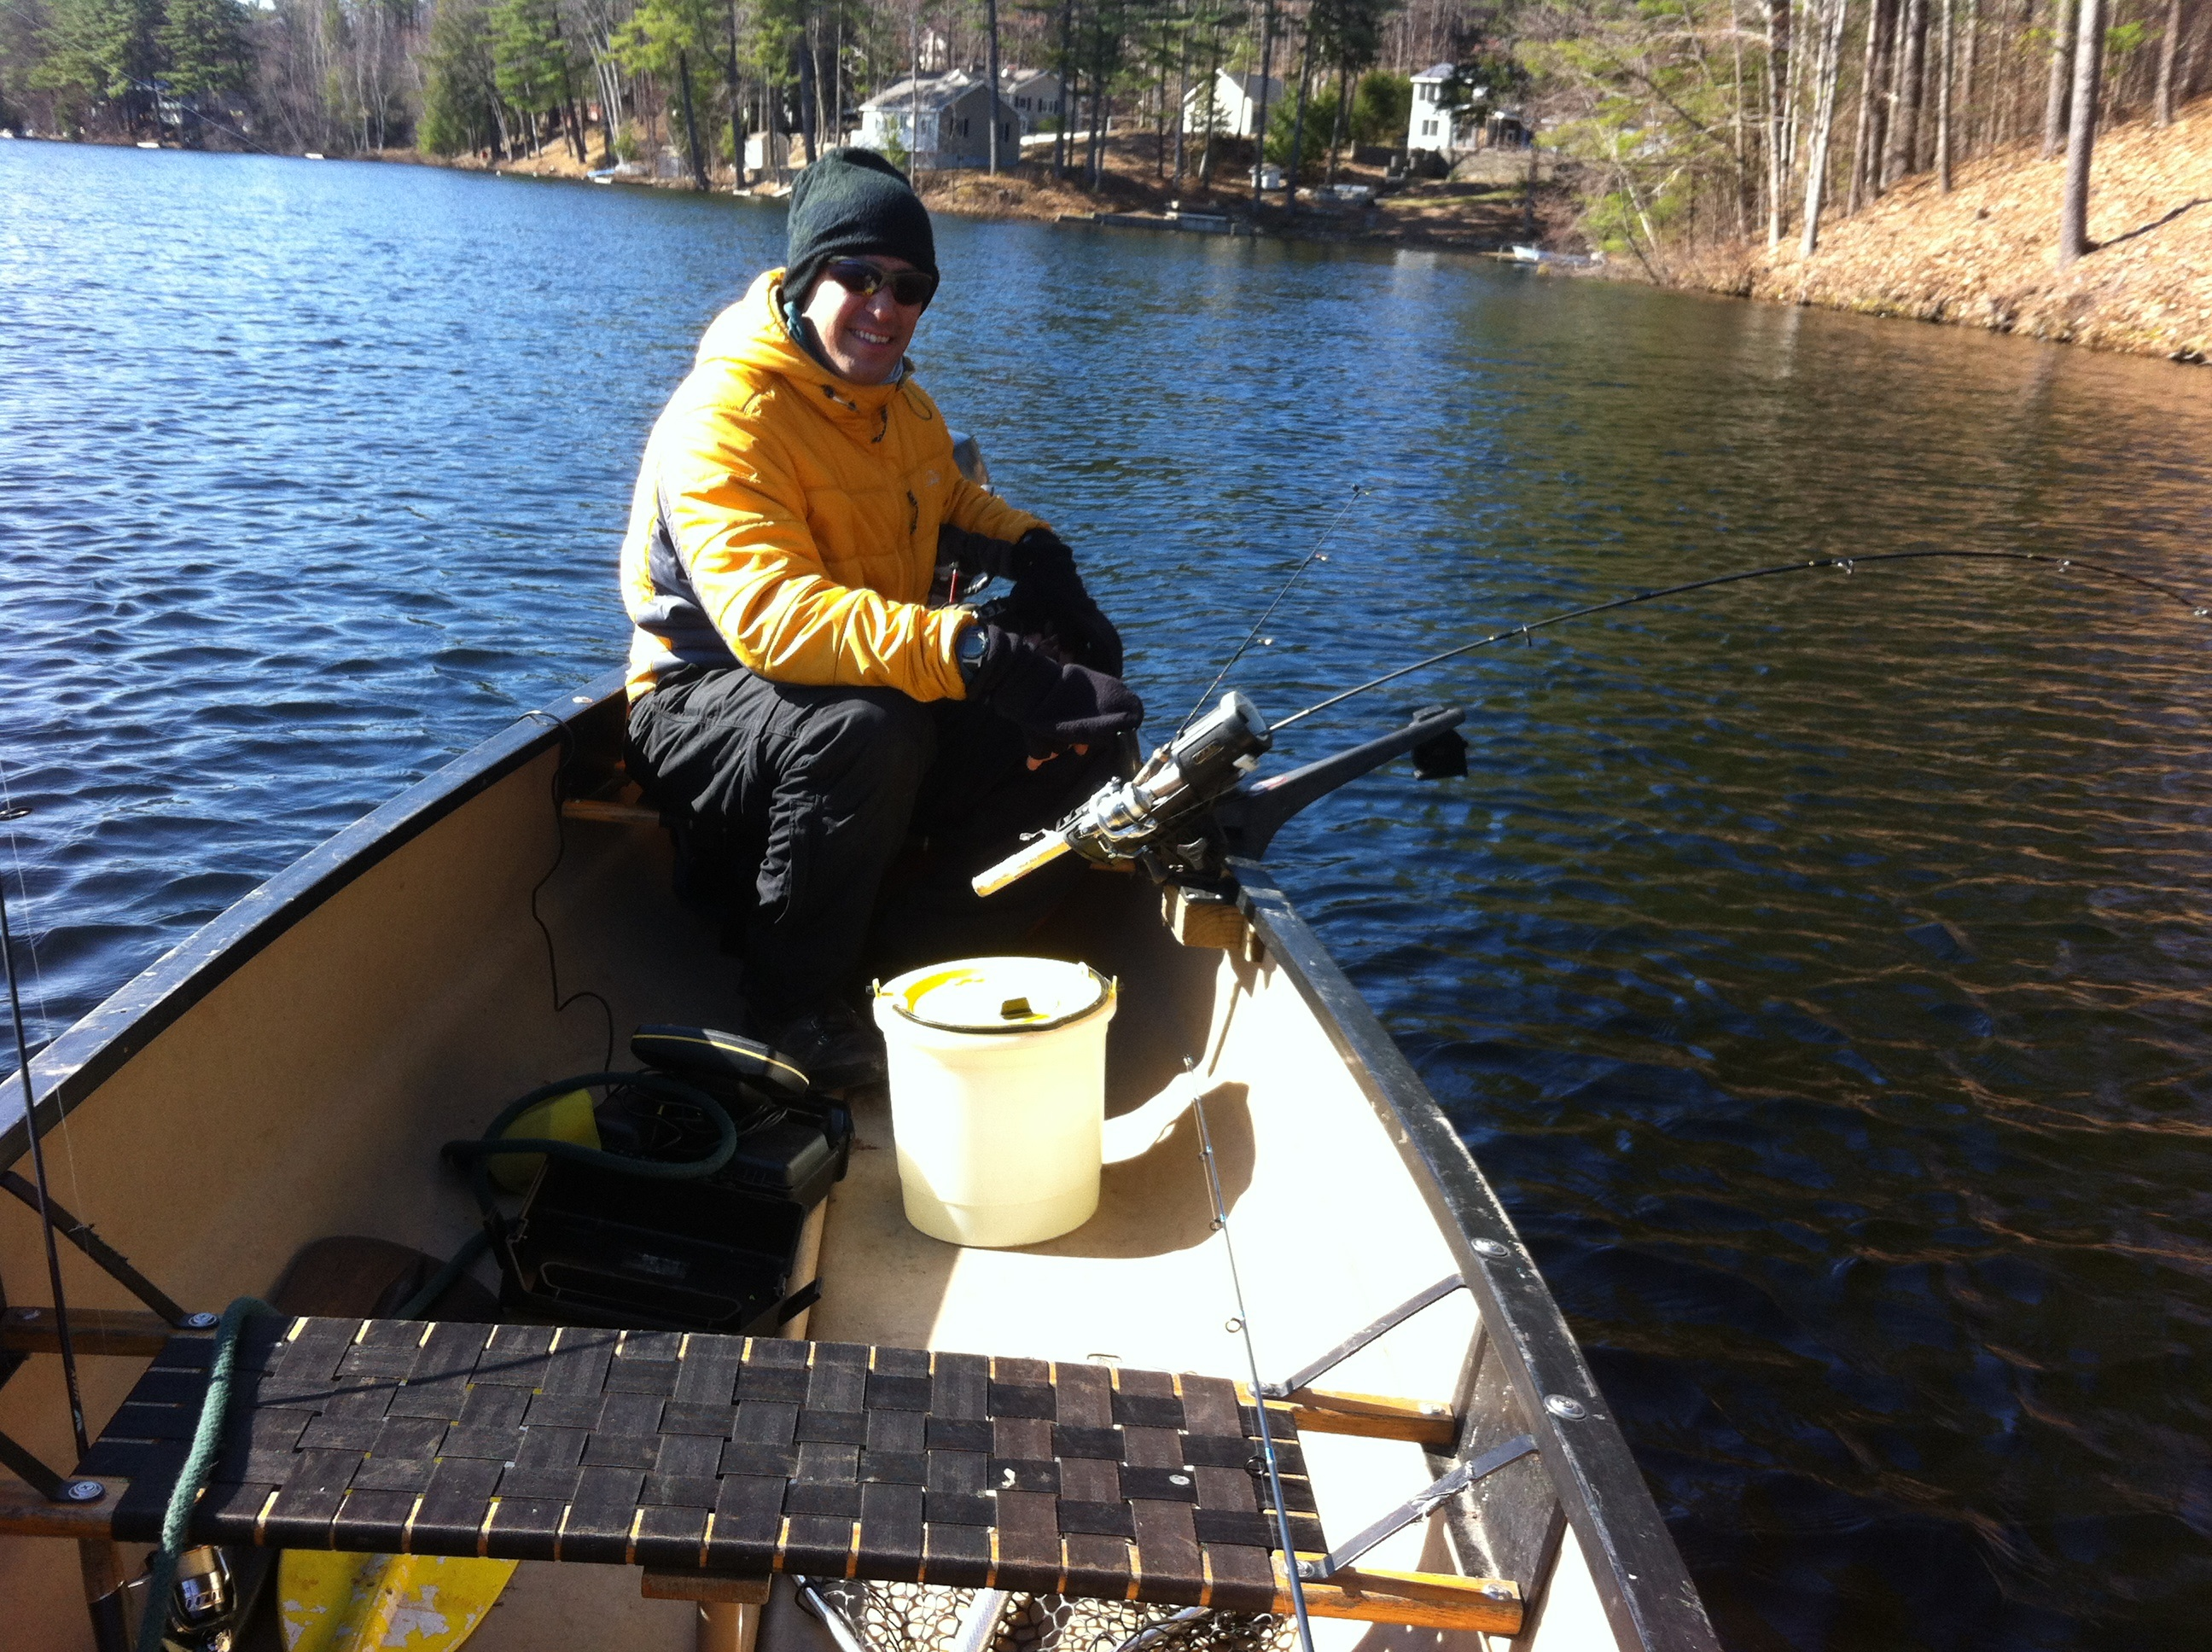 Hiram Maine Map.Trout Fishing On Stanley Pond Hiram Maine April 21 2013 The